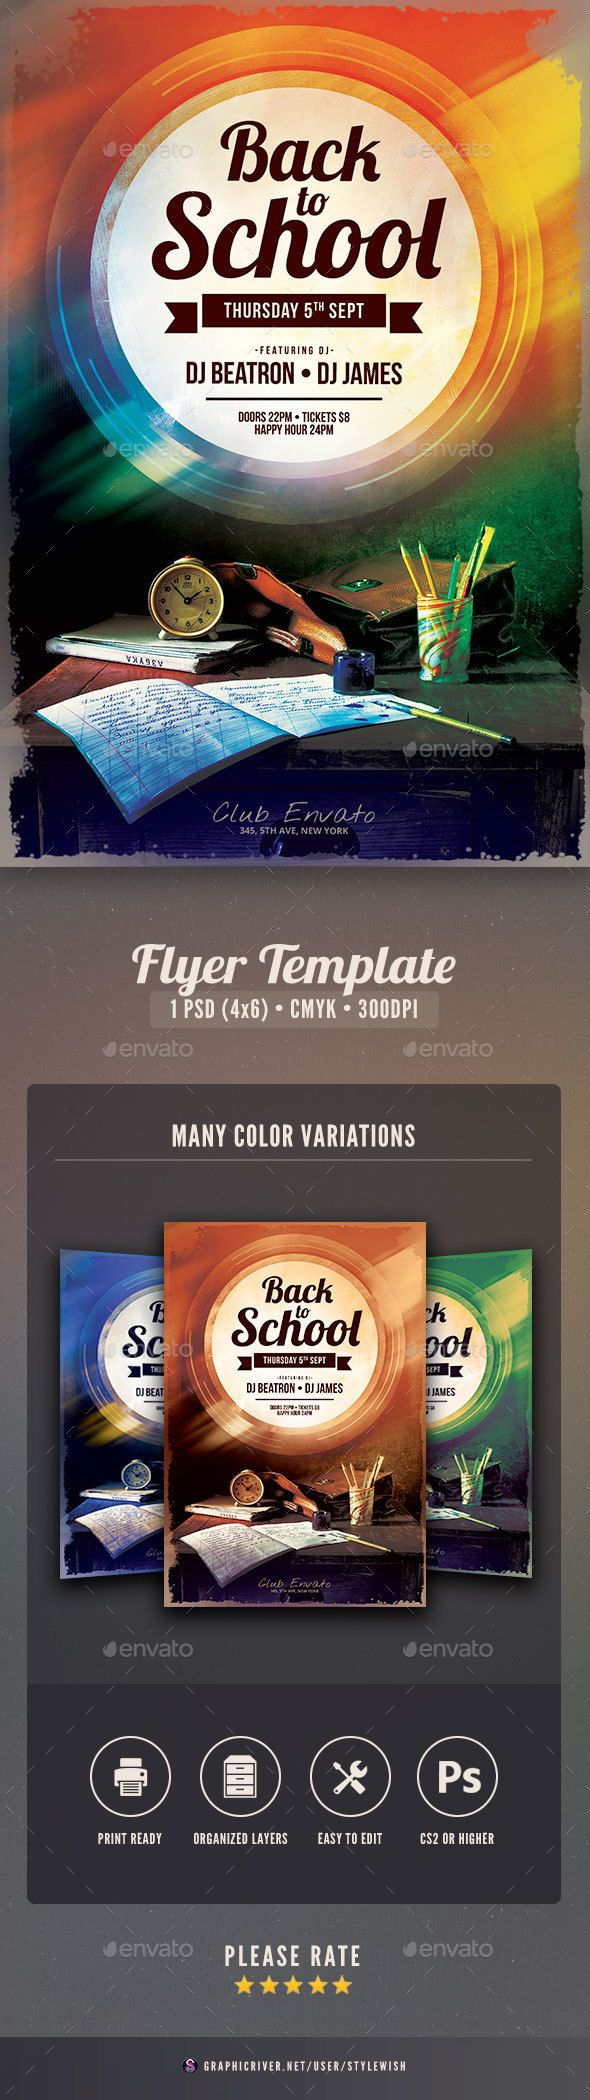 Back To School Flyer  Font Logo Flyer Template And Fonts